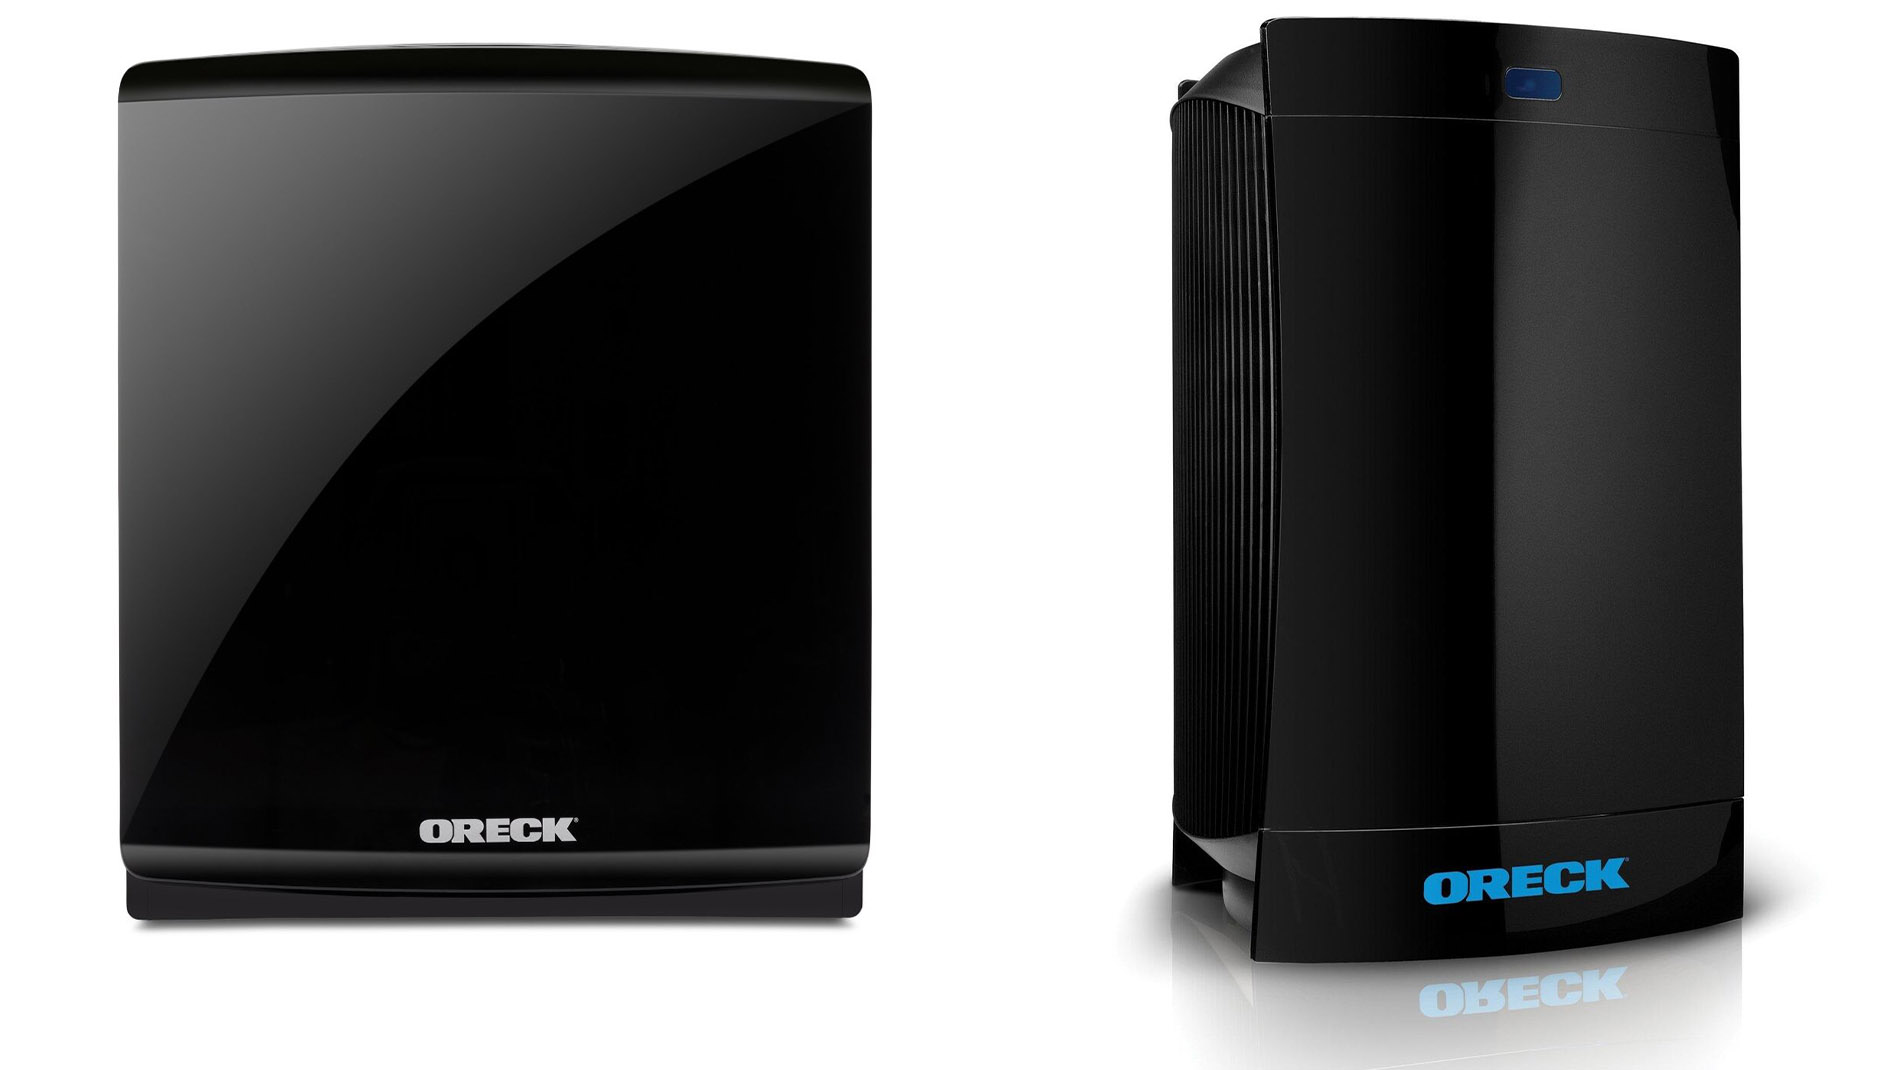 The Real Truth About Oreck Air Purifiers